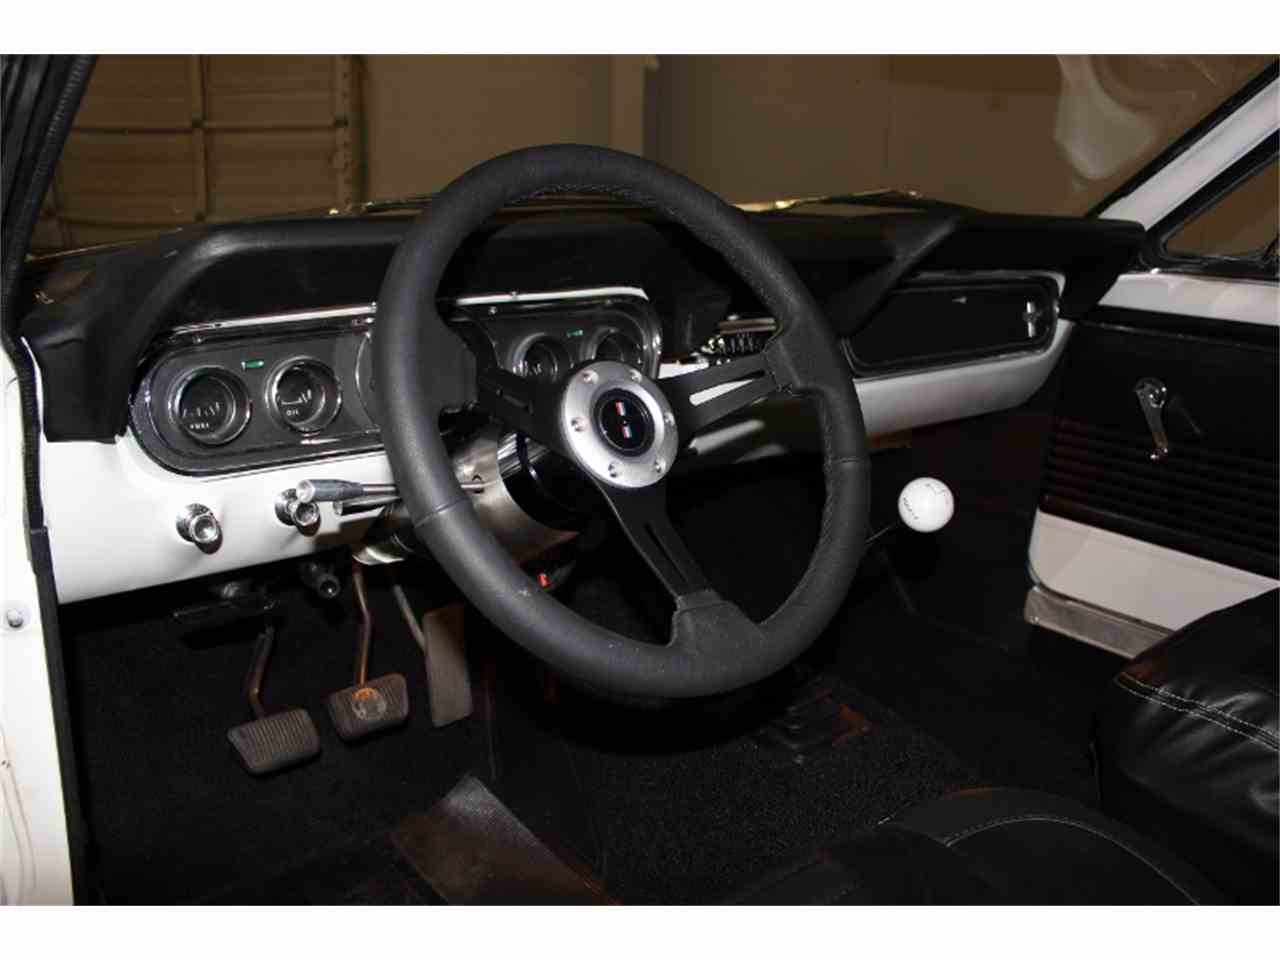 Large Picture of 1966 Ford Mustang located in Lillington North Carolina - $25,000.00 - LS2H